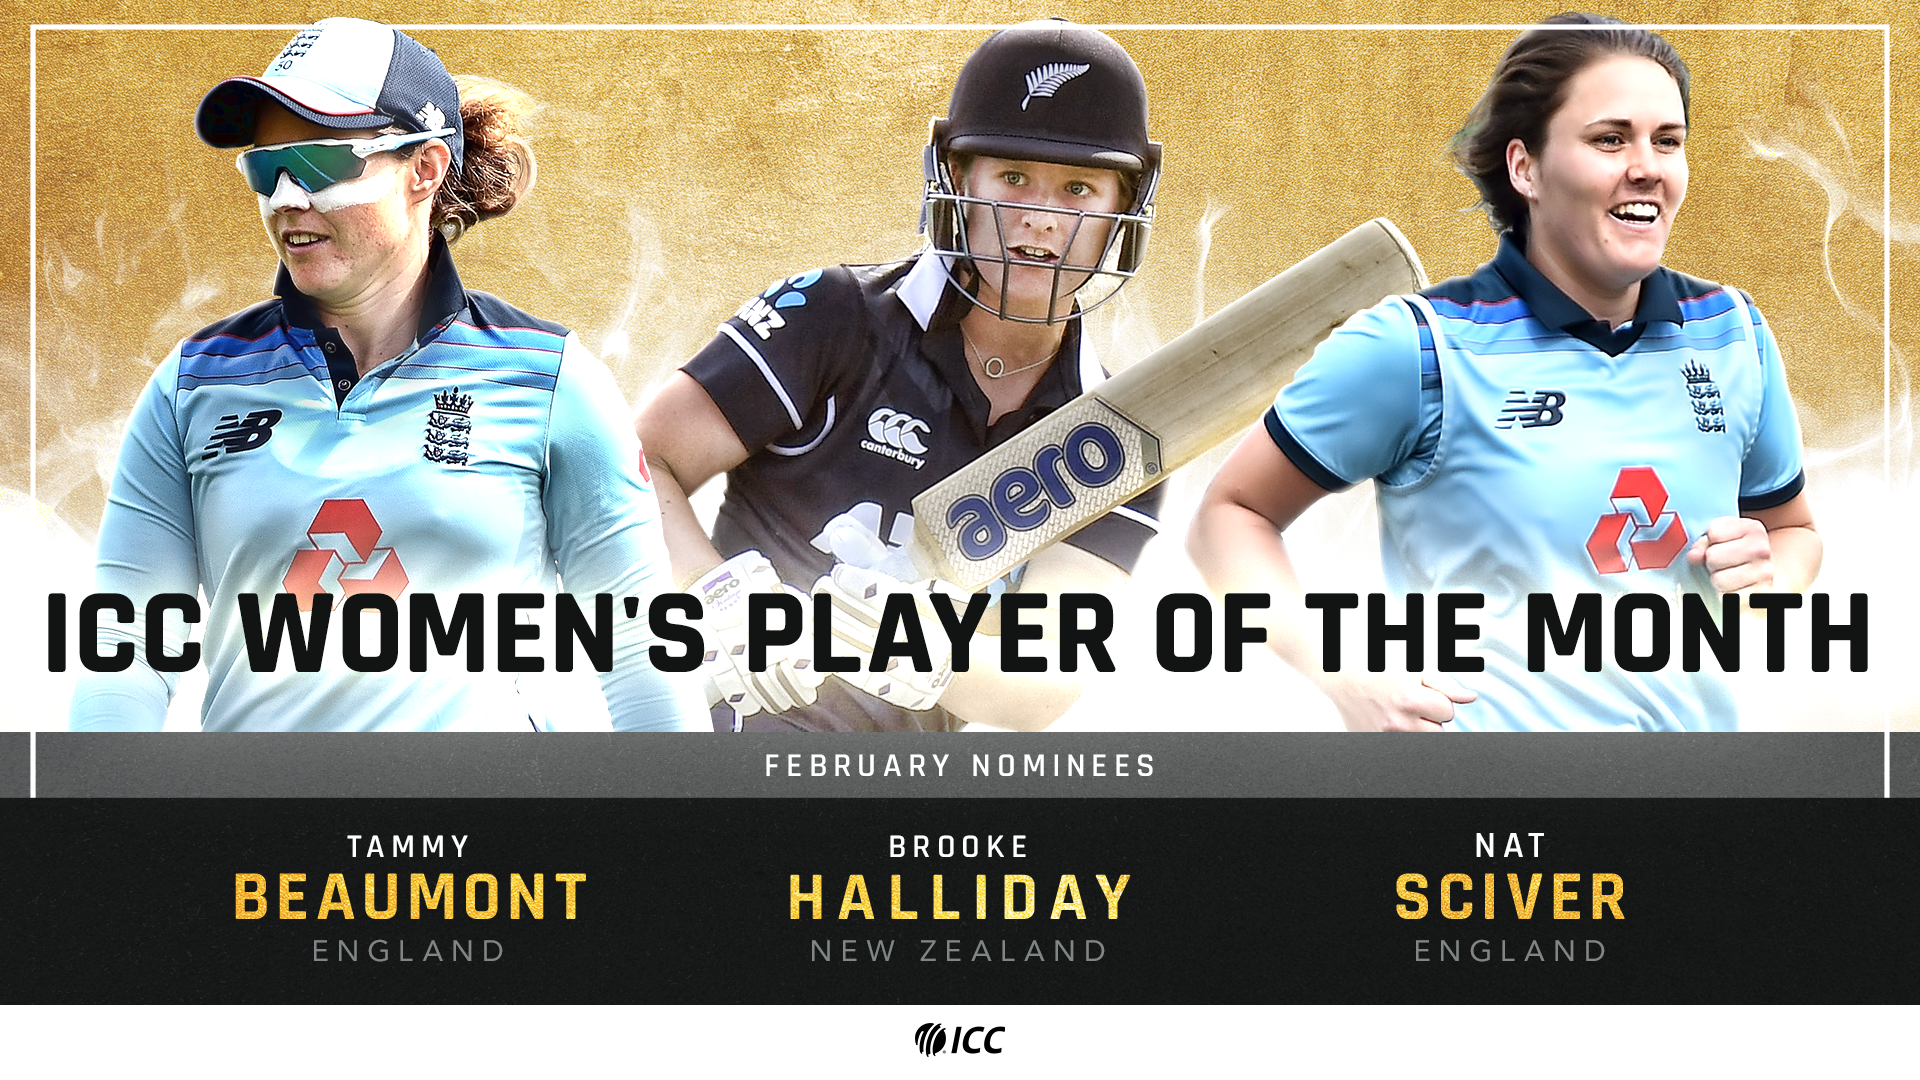 ICC Player of the Month nominations for February announced - International Cricket Council